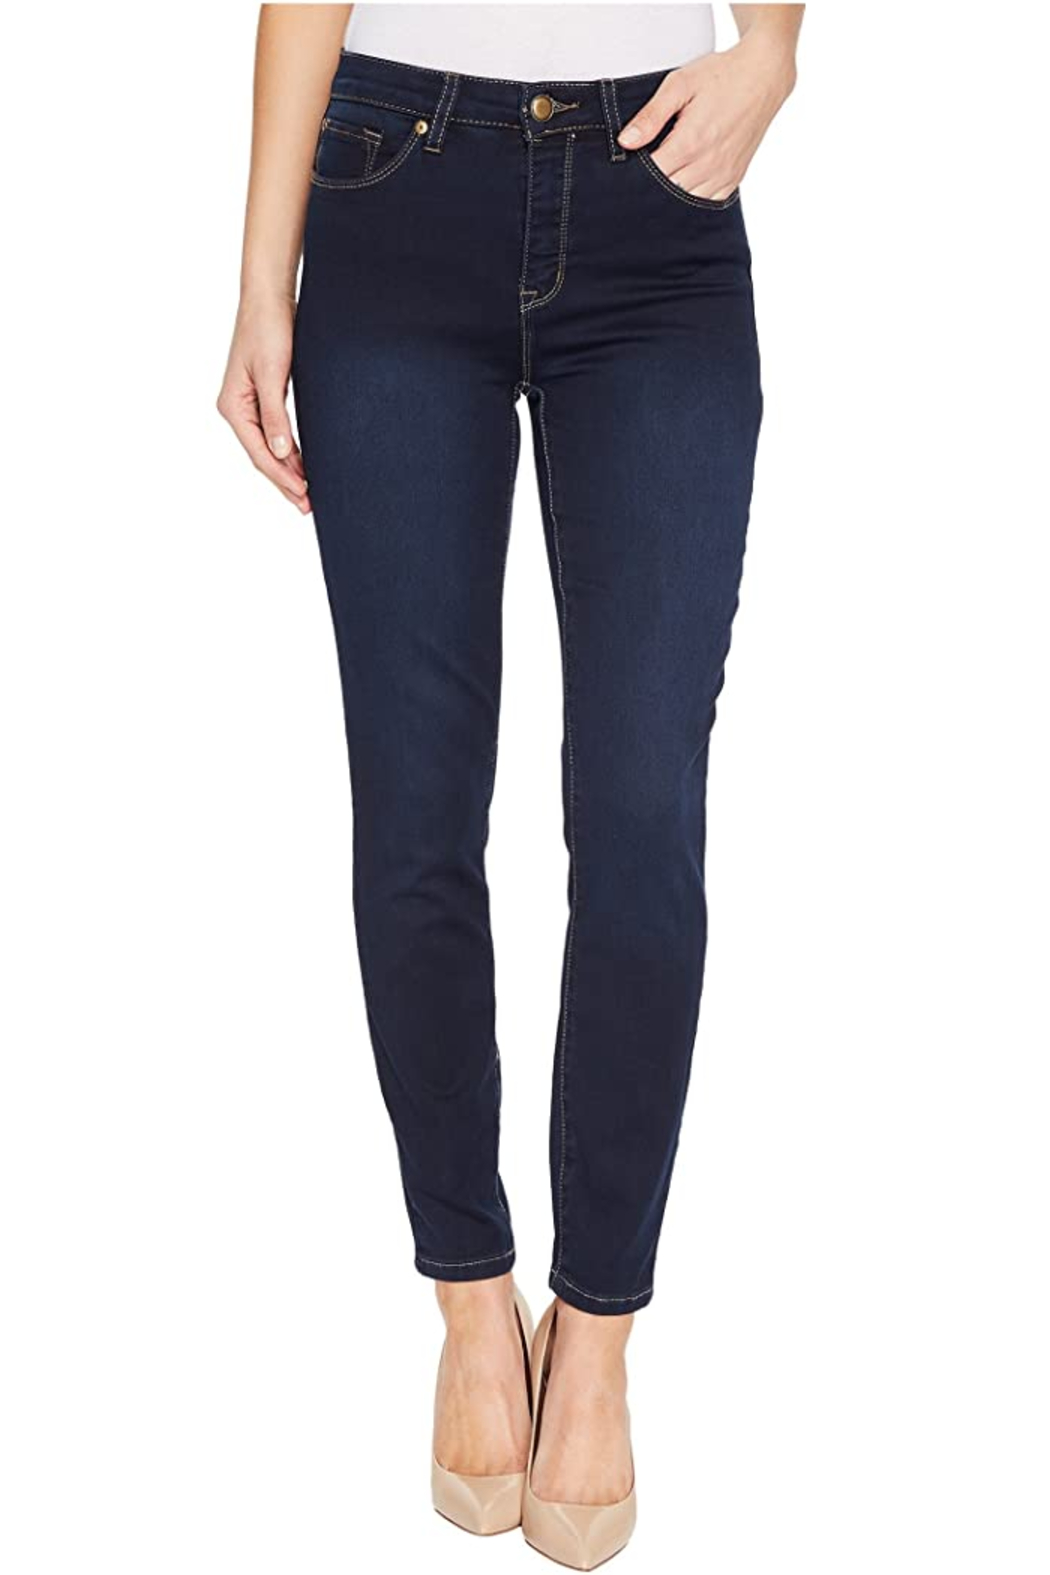 Tribal Jeans Dream Ankle Jean - Front Cropped Image